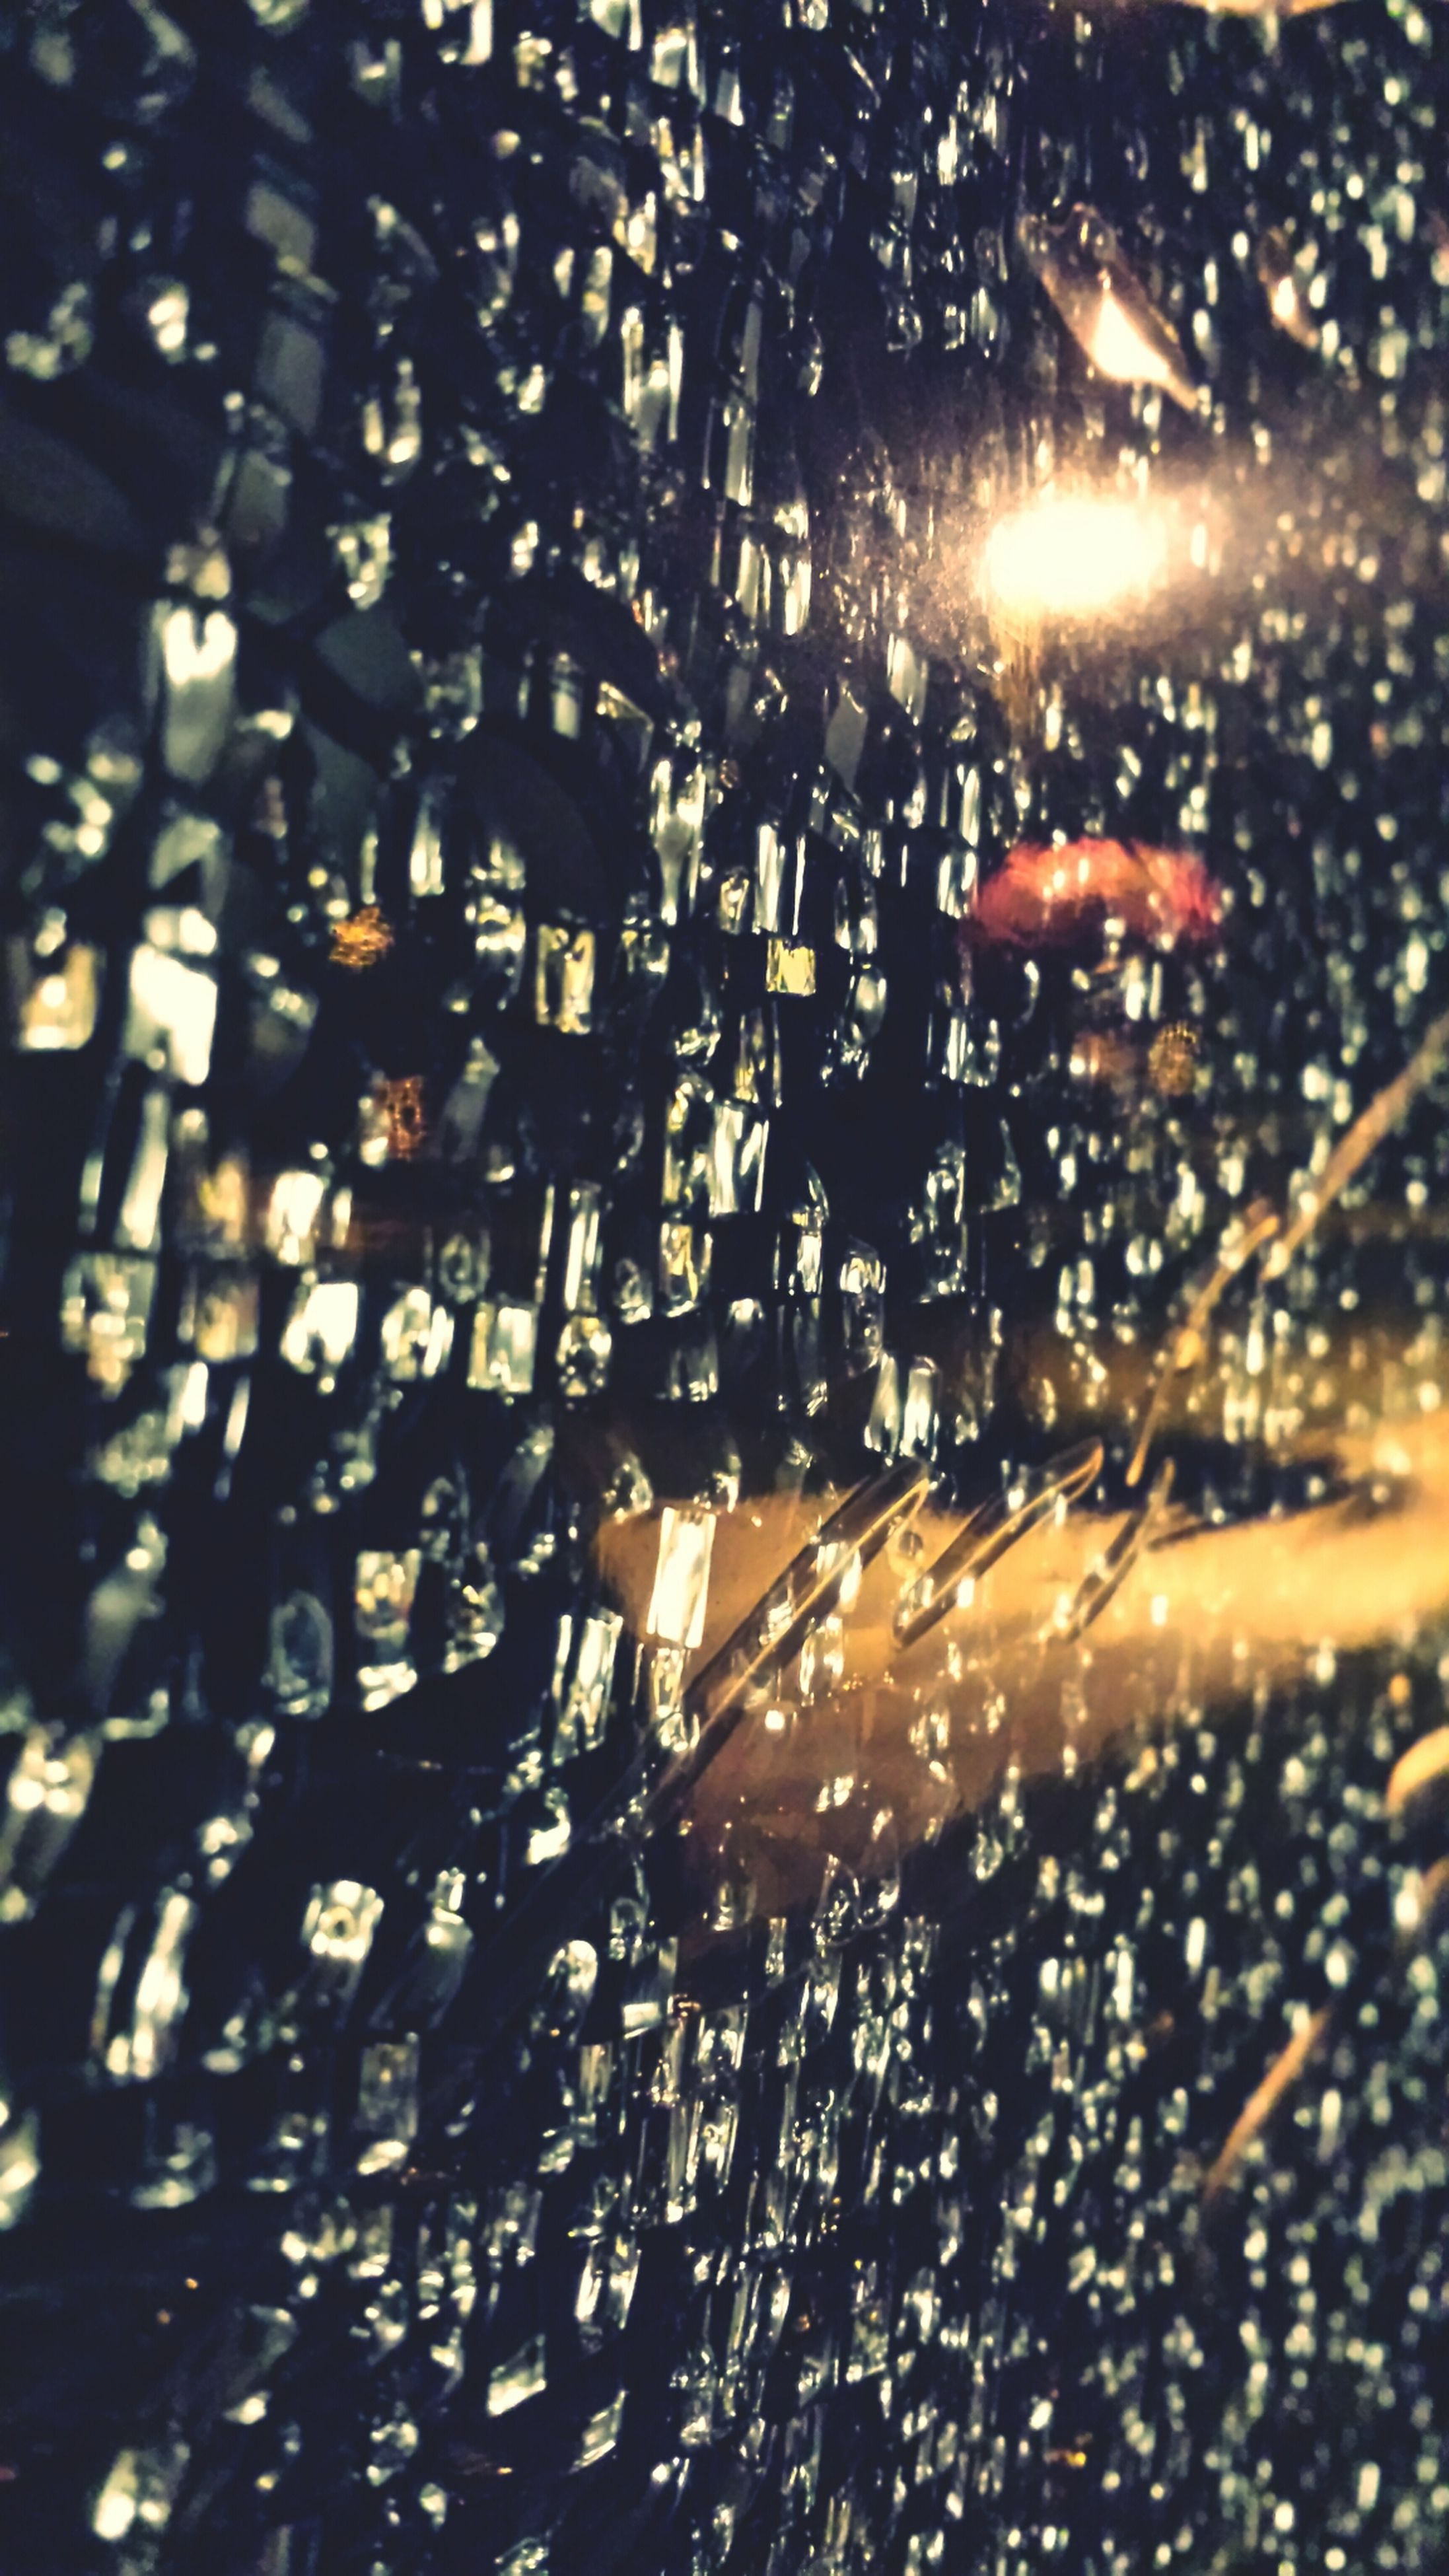 wet, full frame, rain, window, glass - material, illuminated, backgrounds, transparent, drop, water, night, indoors, season, city, raindrop, street, glass, no people, weather, building exterior